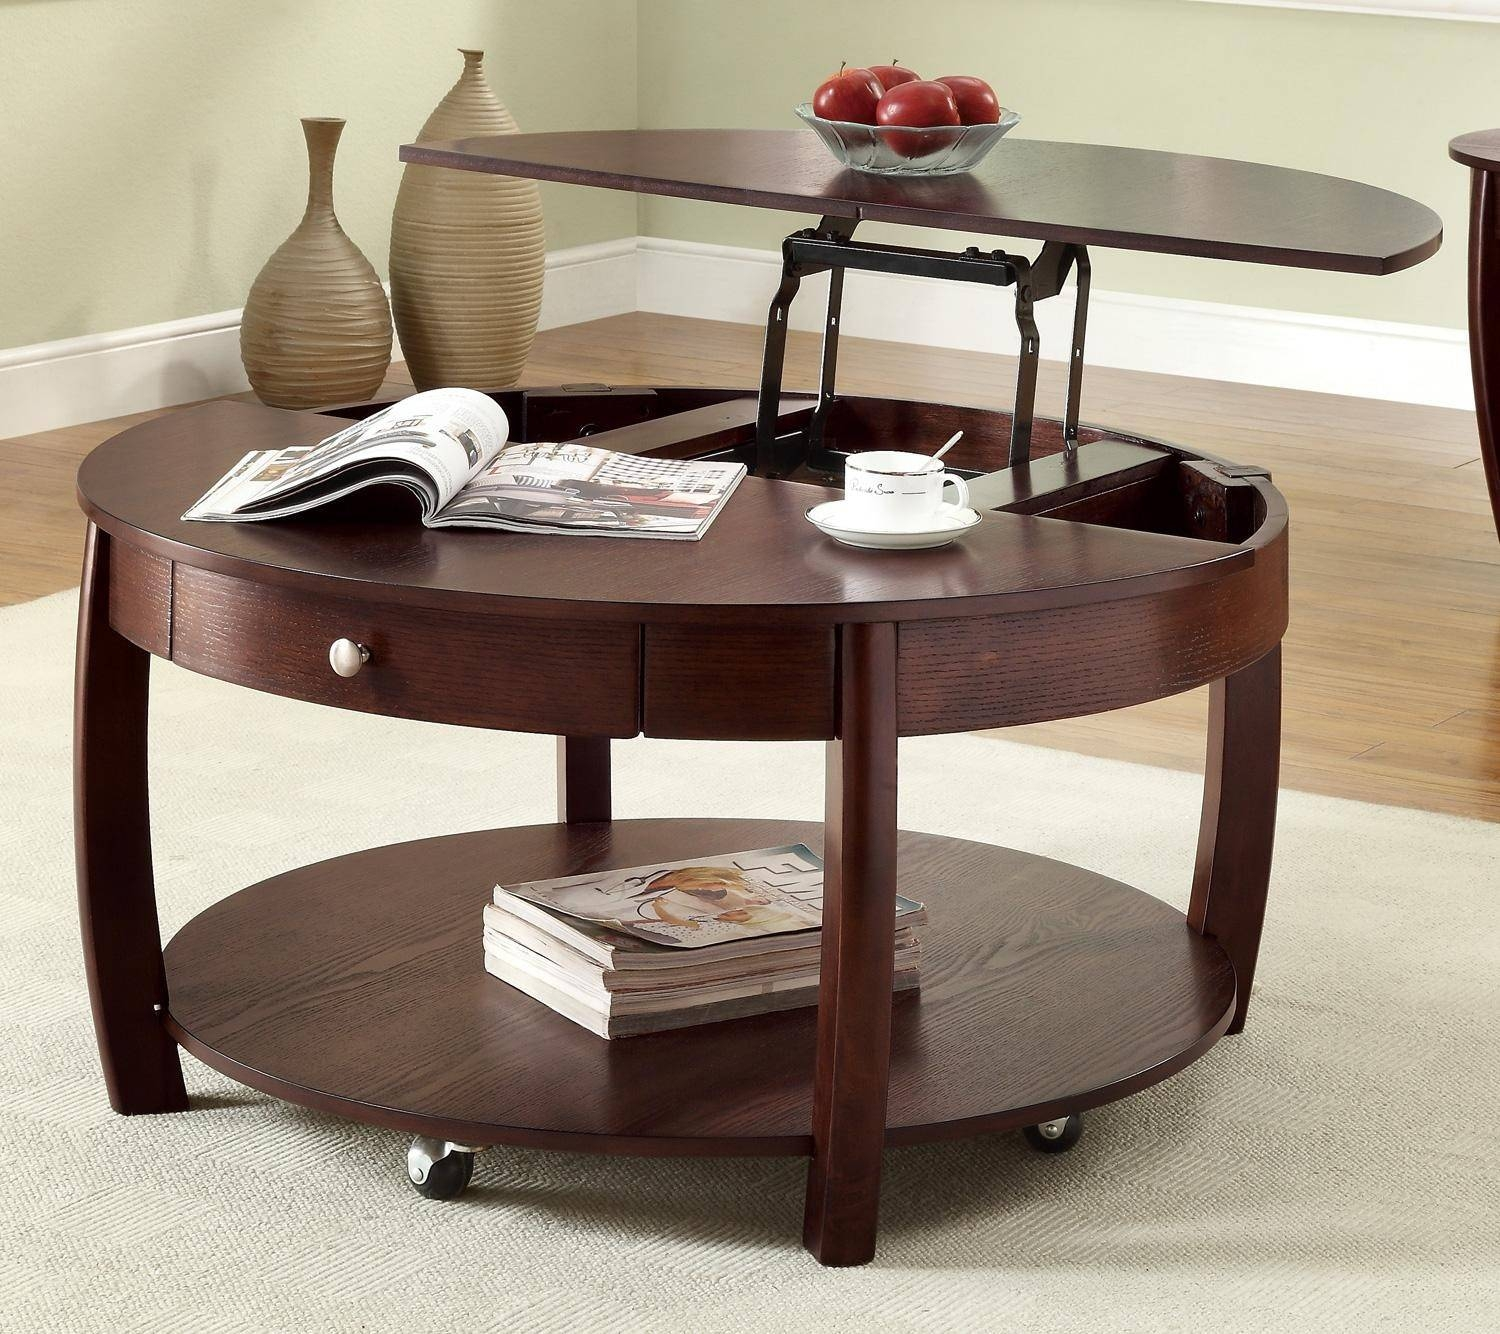 Coffee Table: Marvelous Lift Top Coffee Table Ikea Designs Small inside Coffee Tables With Lift Top Storage (Image 11 of 30)